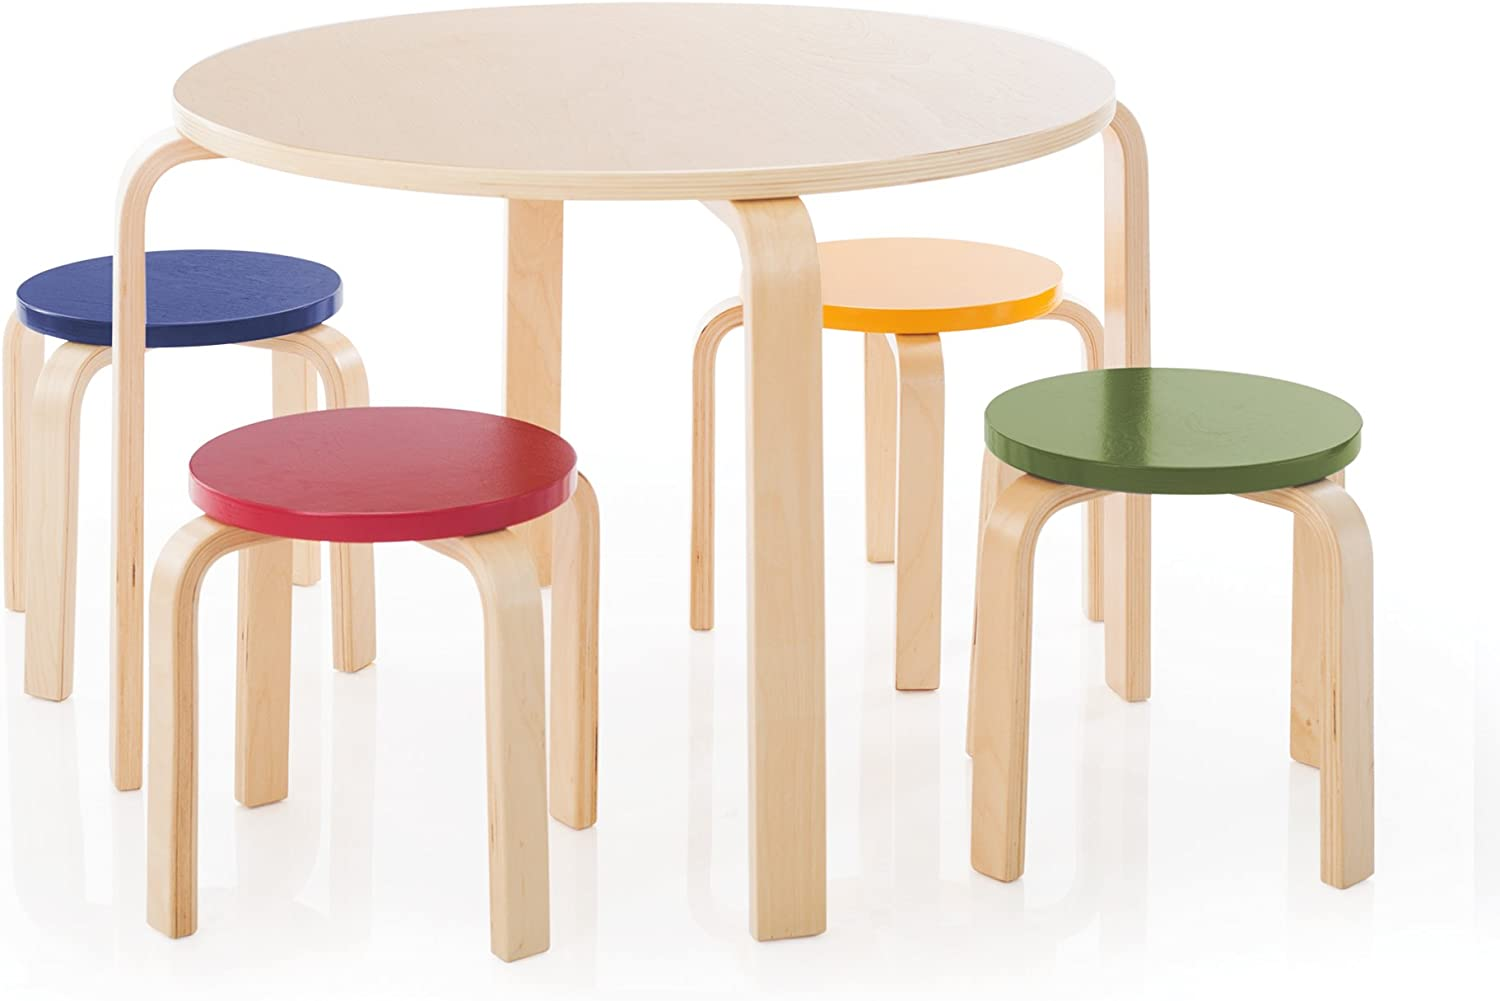 Guidecraft Nordic Table and Chairs Set for Kids: Multi-Color - Stacking Bentwood Stools with Curved Wood Activity Table - Children's Modern Kitchen, Playroom and Classroom Furniture